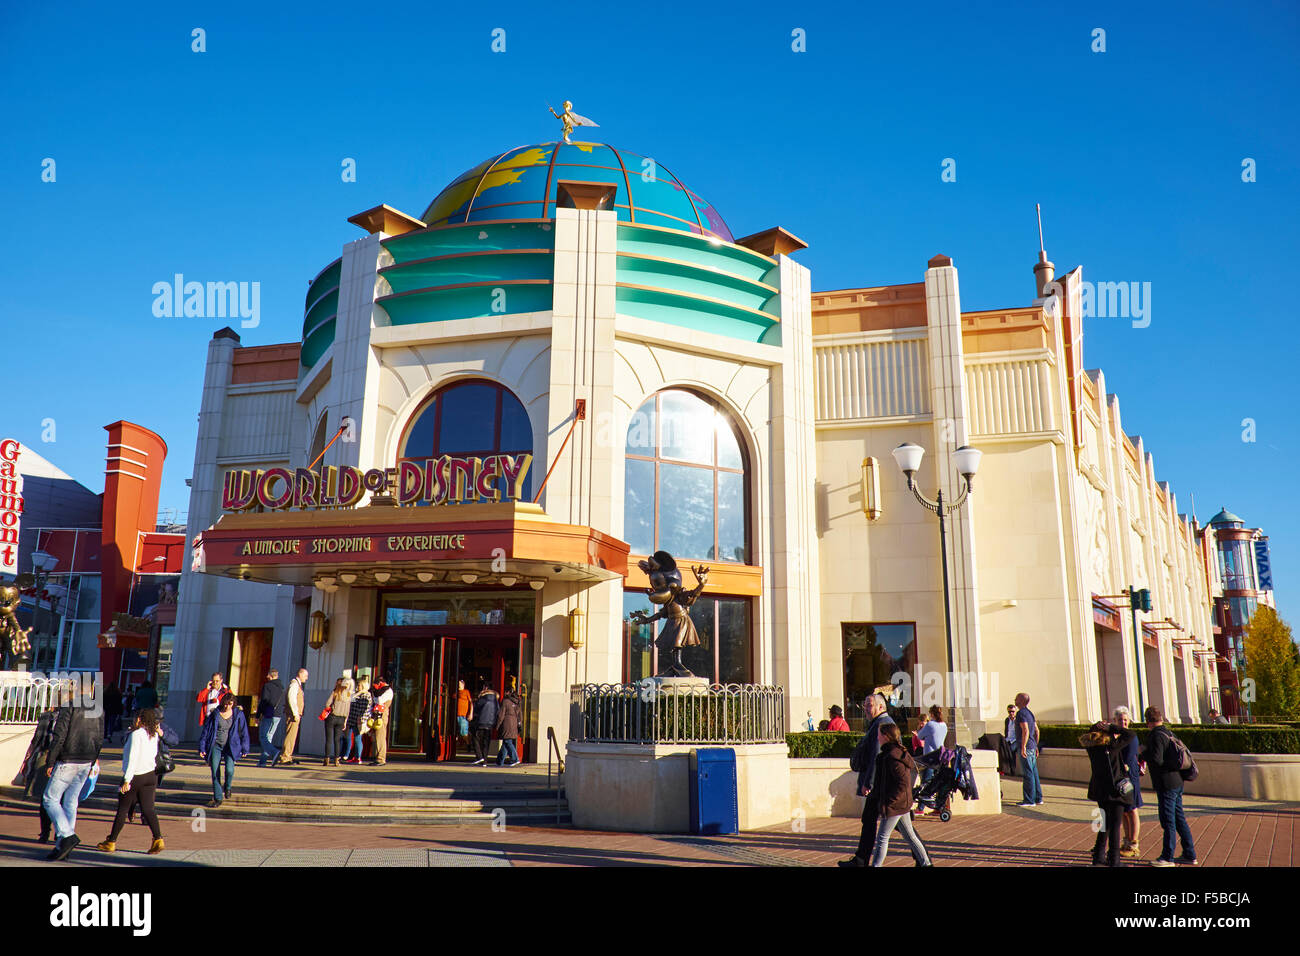 world of disney store within the disney village disneyland paris stock photo royalty free. Black Bedroom Furniture Sets. Home Design Ideas